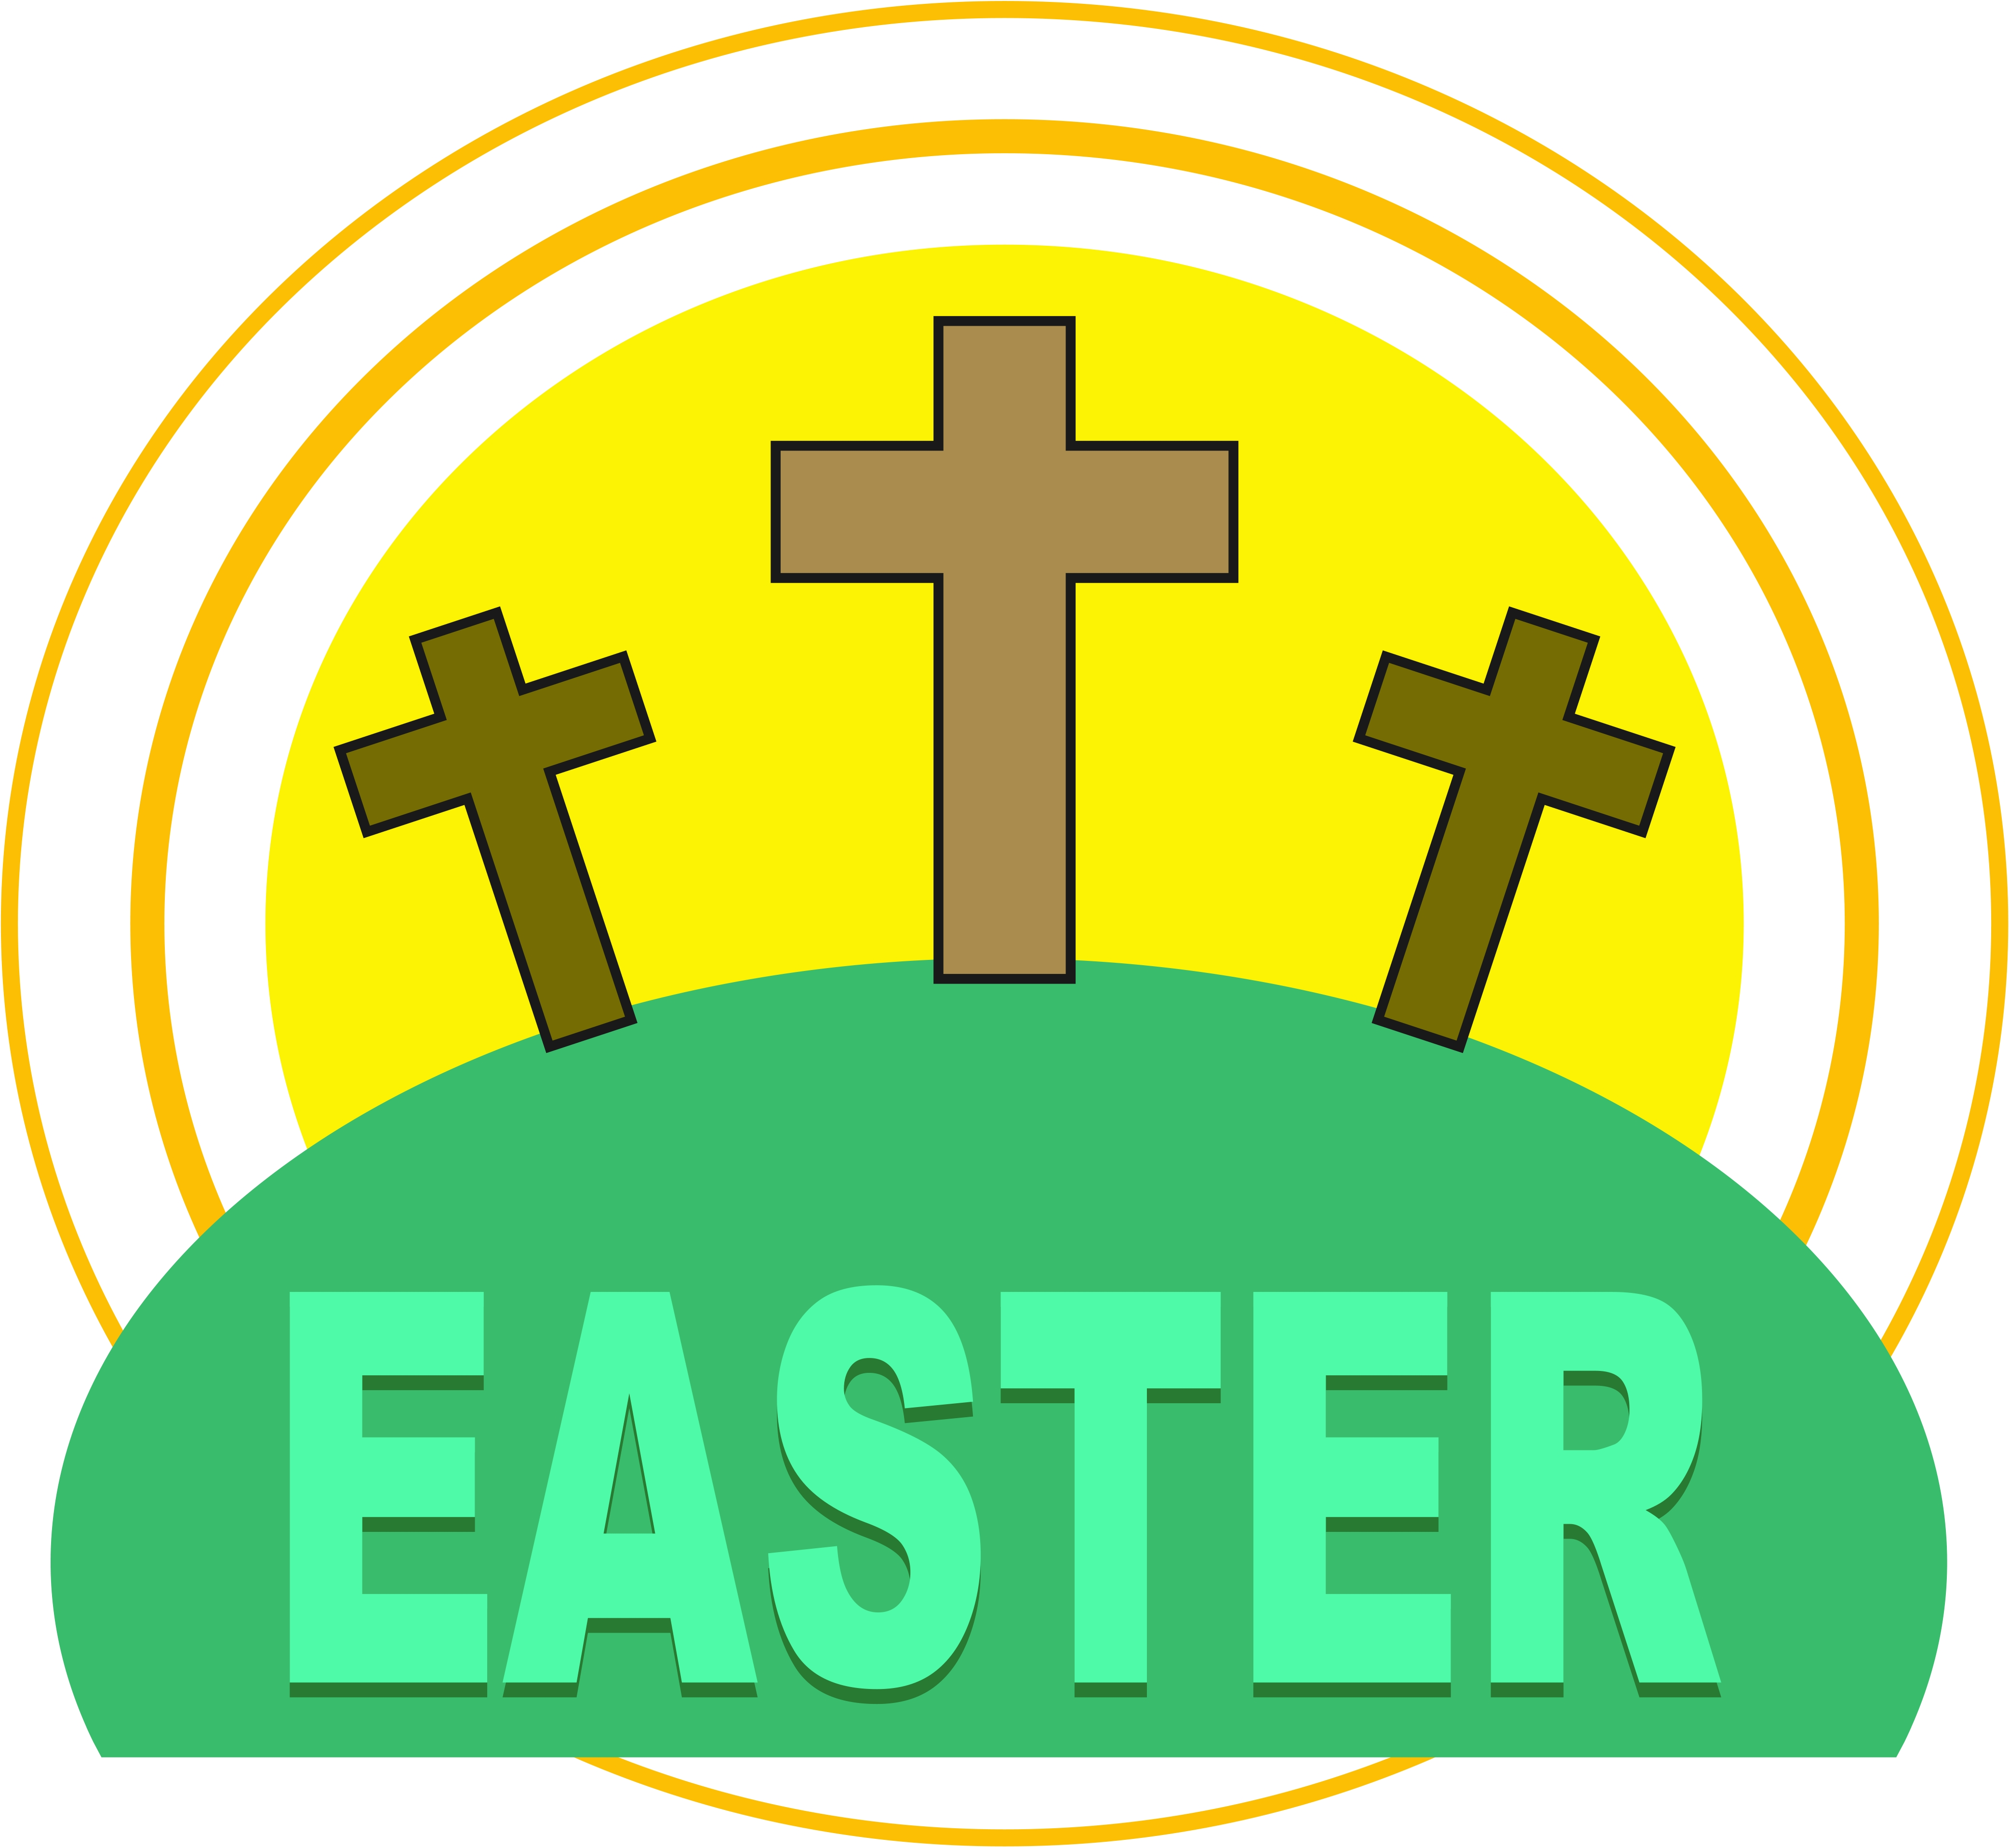 Easter Calvary Free Images At Clker Com -Easter Calvary Free Images At Clker Com Vector Clip Art Online-5